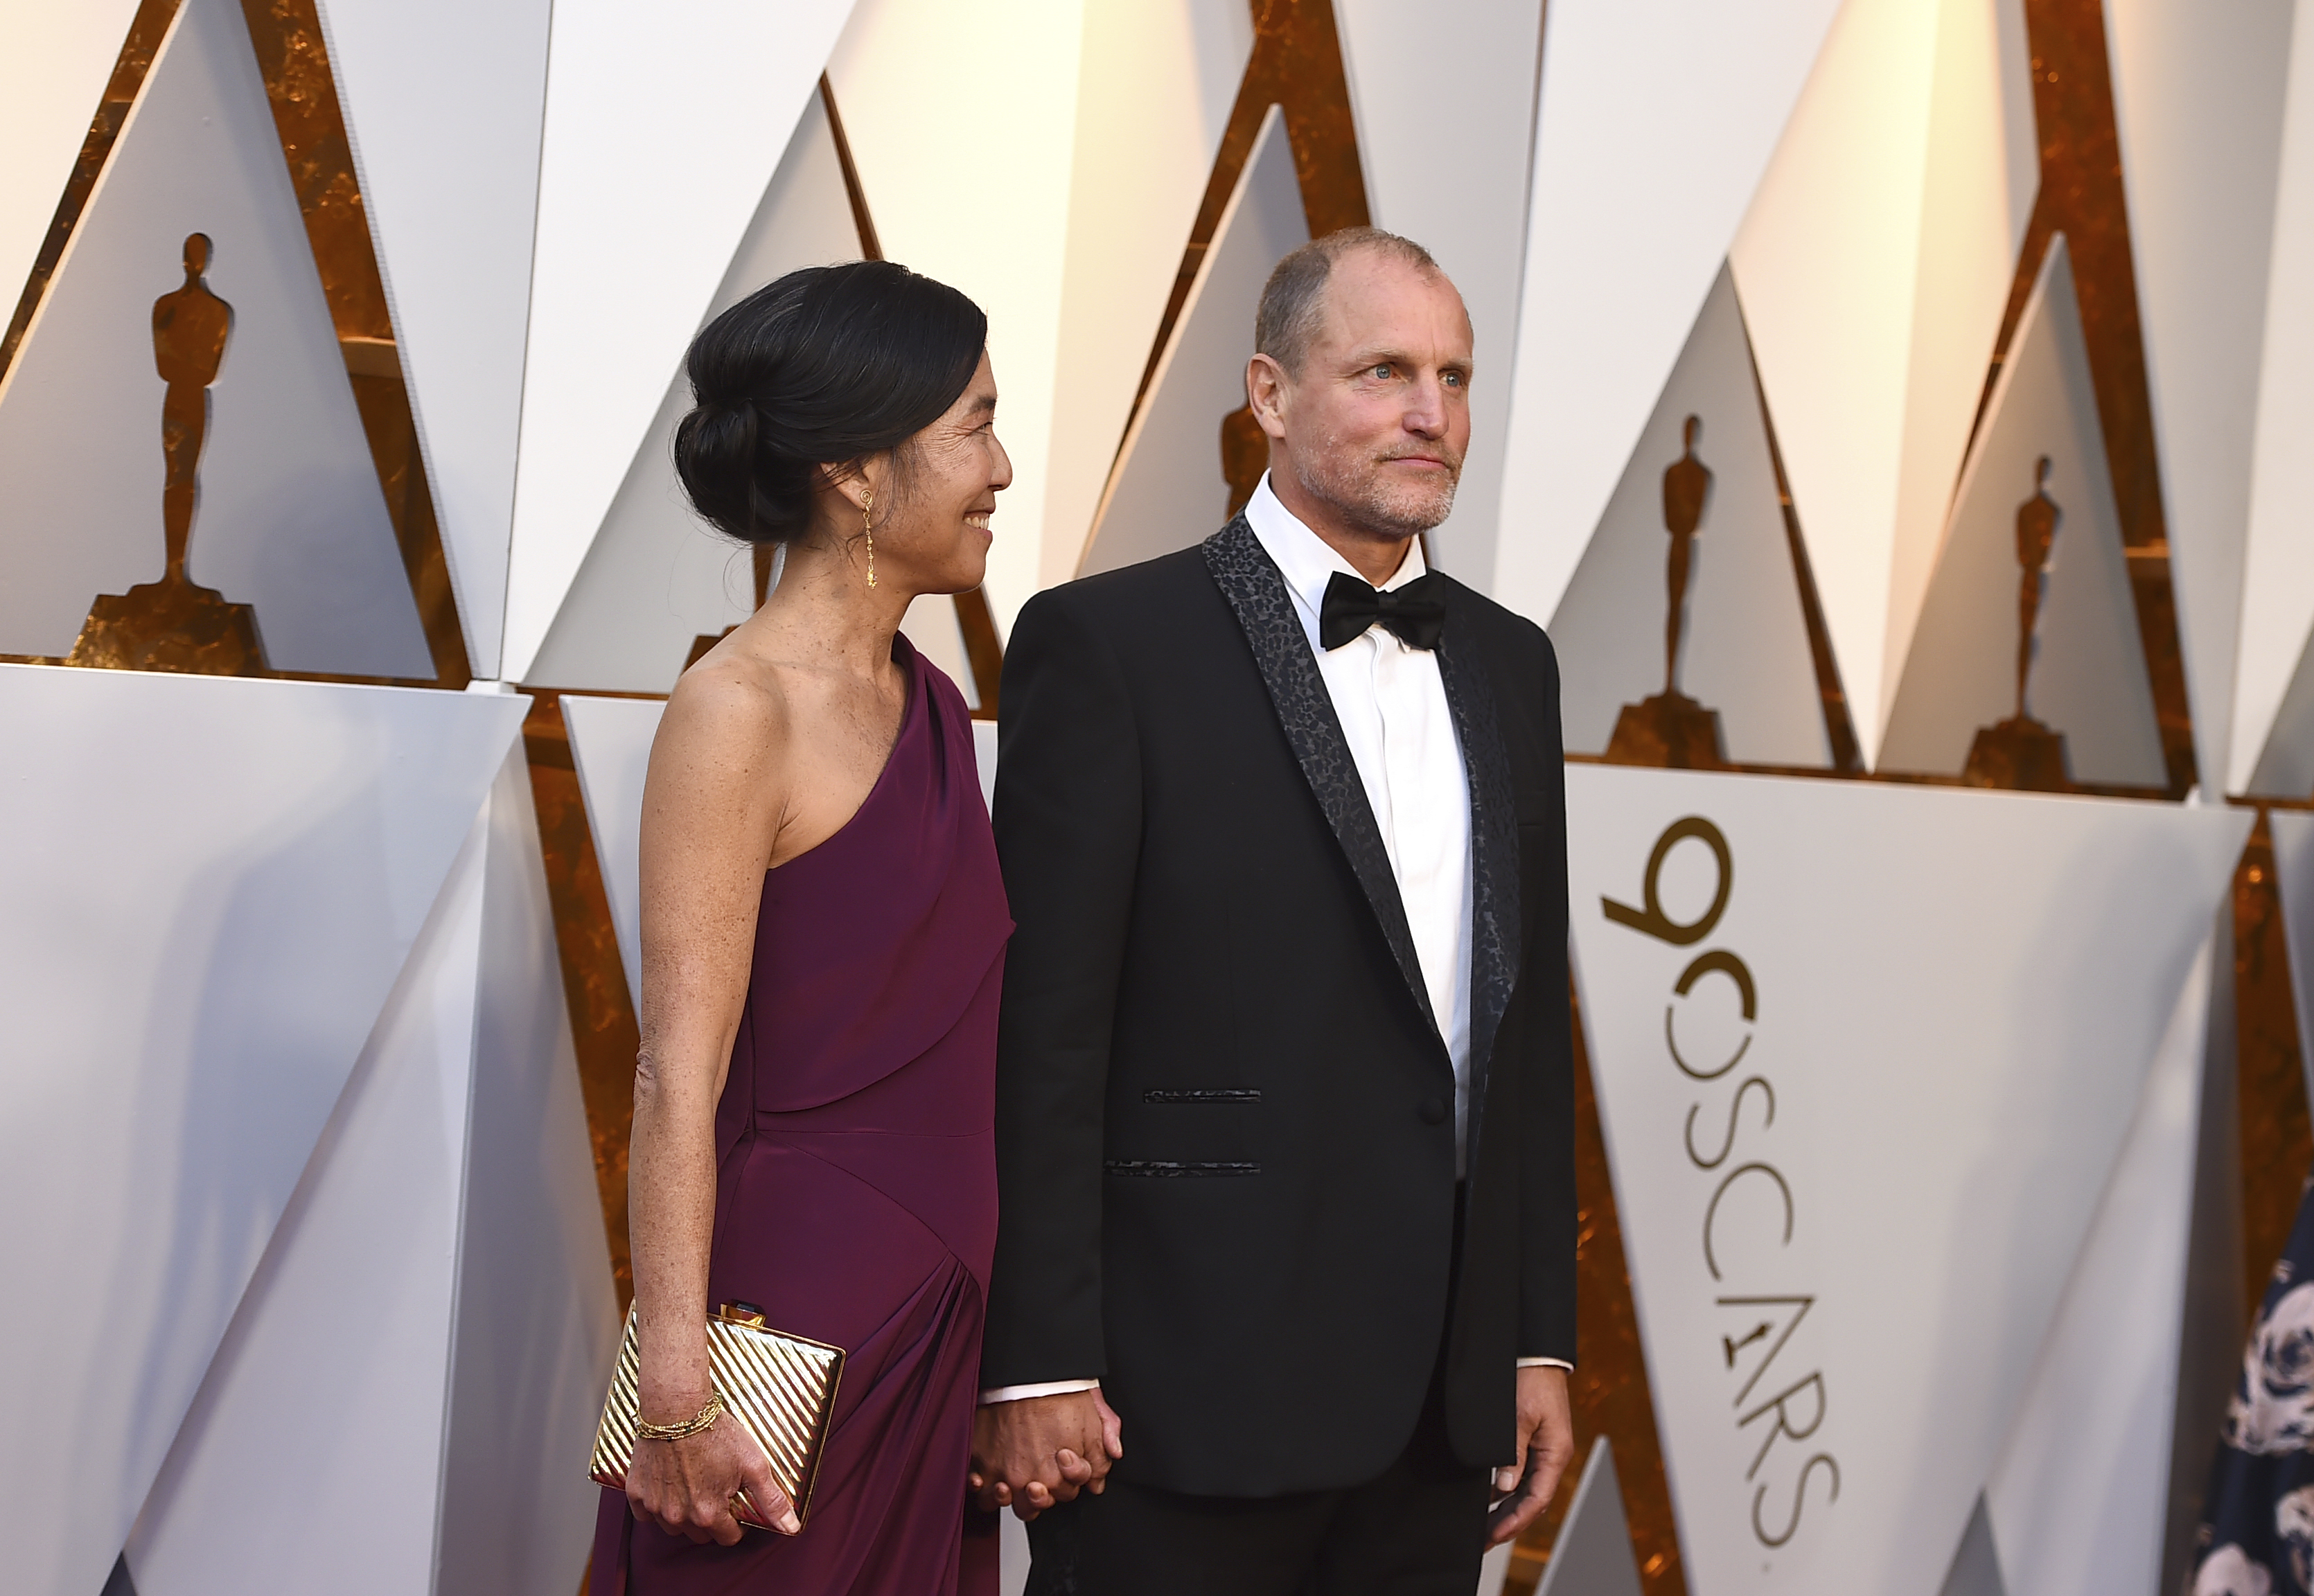 <div class='meta'><div class='origin-logo' data-origin='none'></div><span class='caption-text' data-credit='Jordan Strauss/Invision/AP'>Laura Louie, left, and Woody Harrelson (nominated for Best Supporting Actor for ''Three Billboards Outside Ebbing, Missouri'') arrive at the Oscars.</span></div>